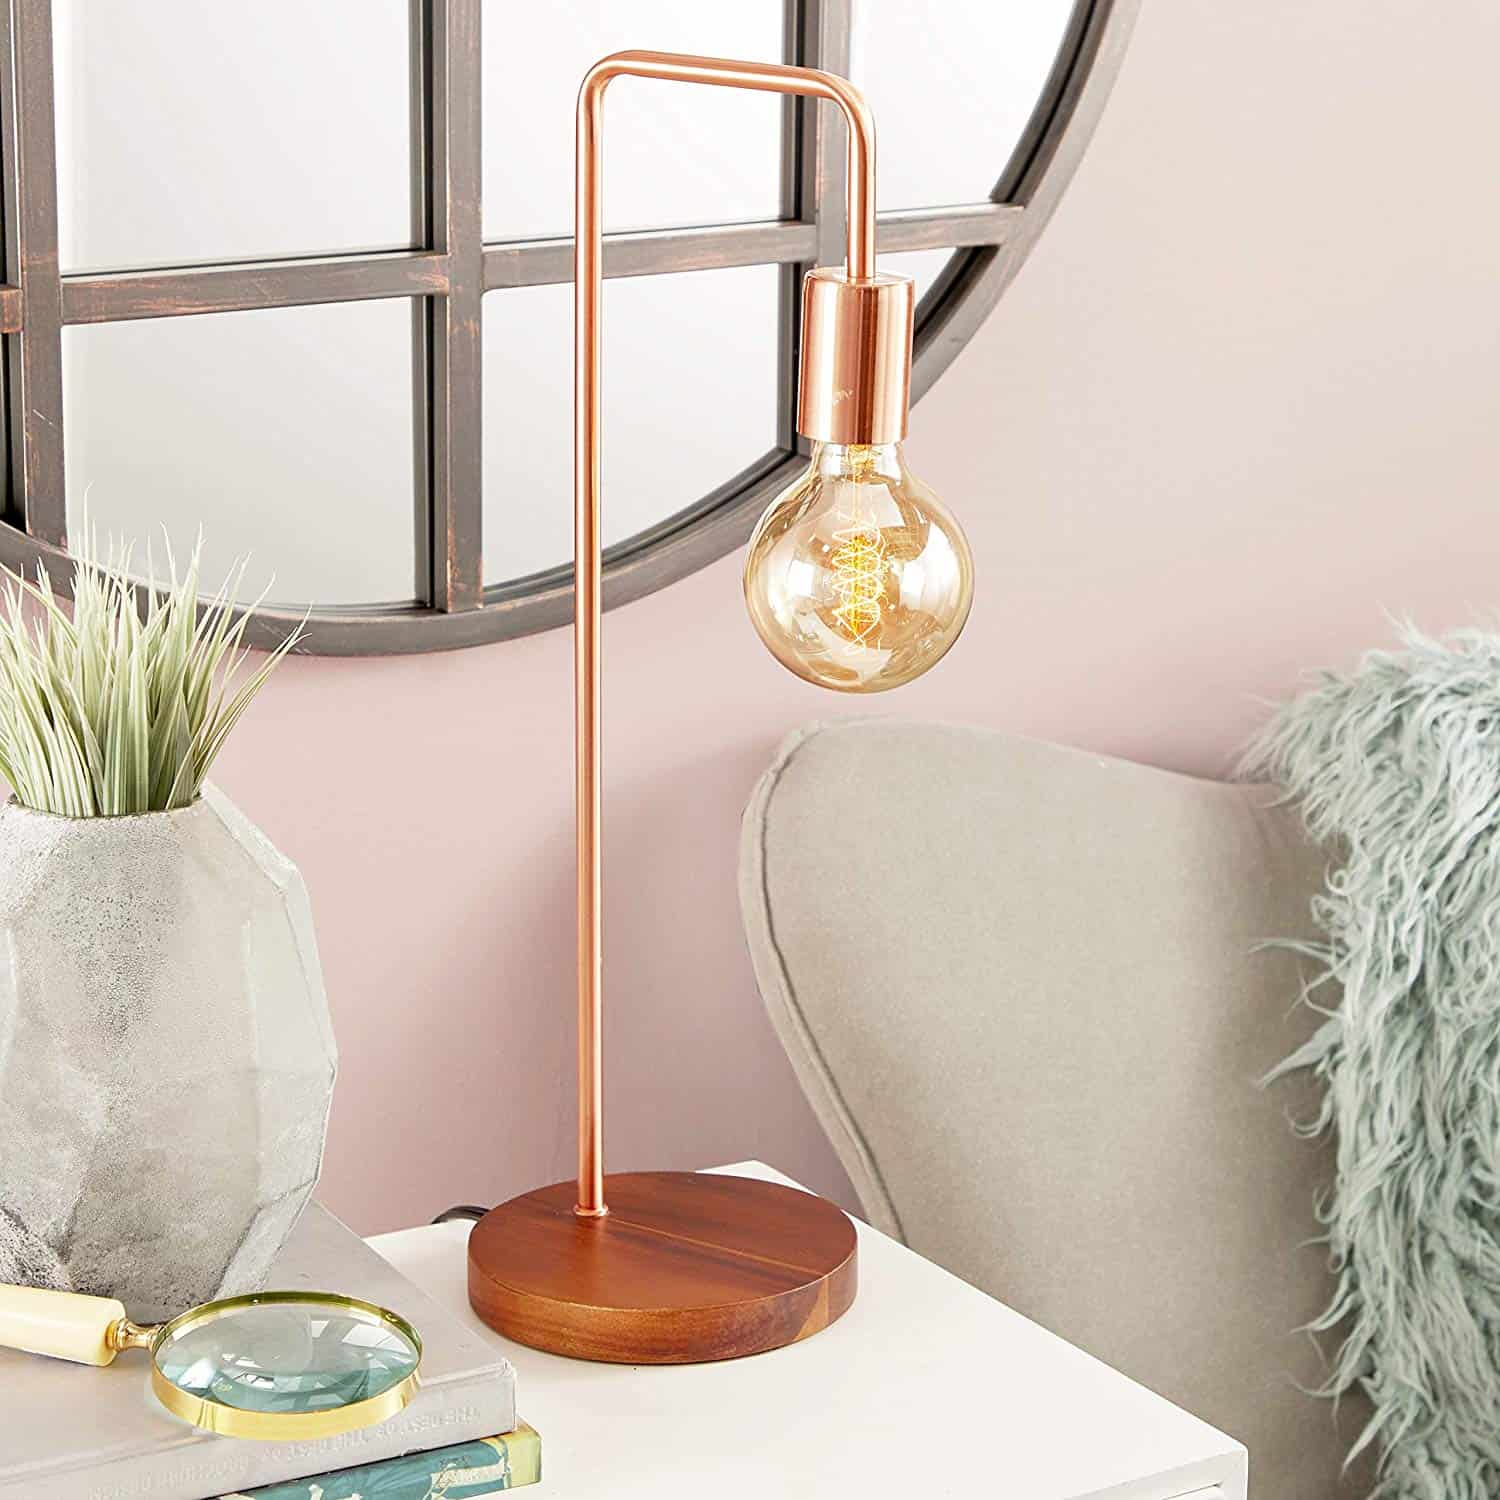 Cosmopolitan 39113 Tall Industrial Style Metallic Copper Metal Table Lamp